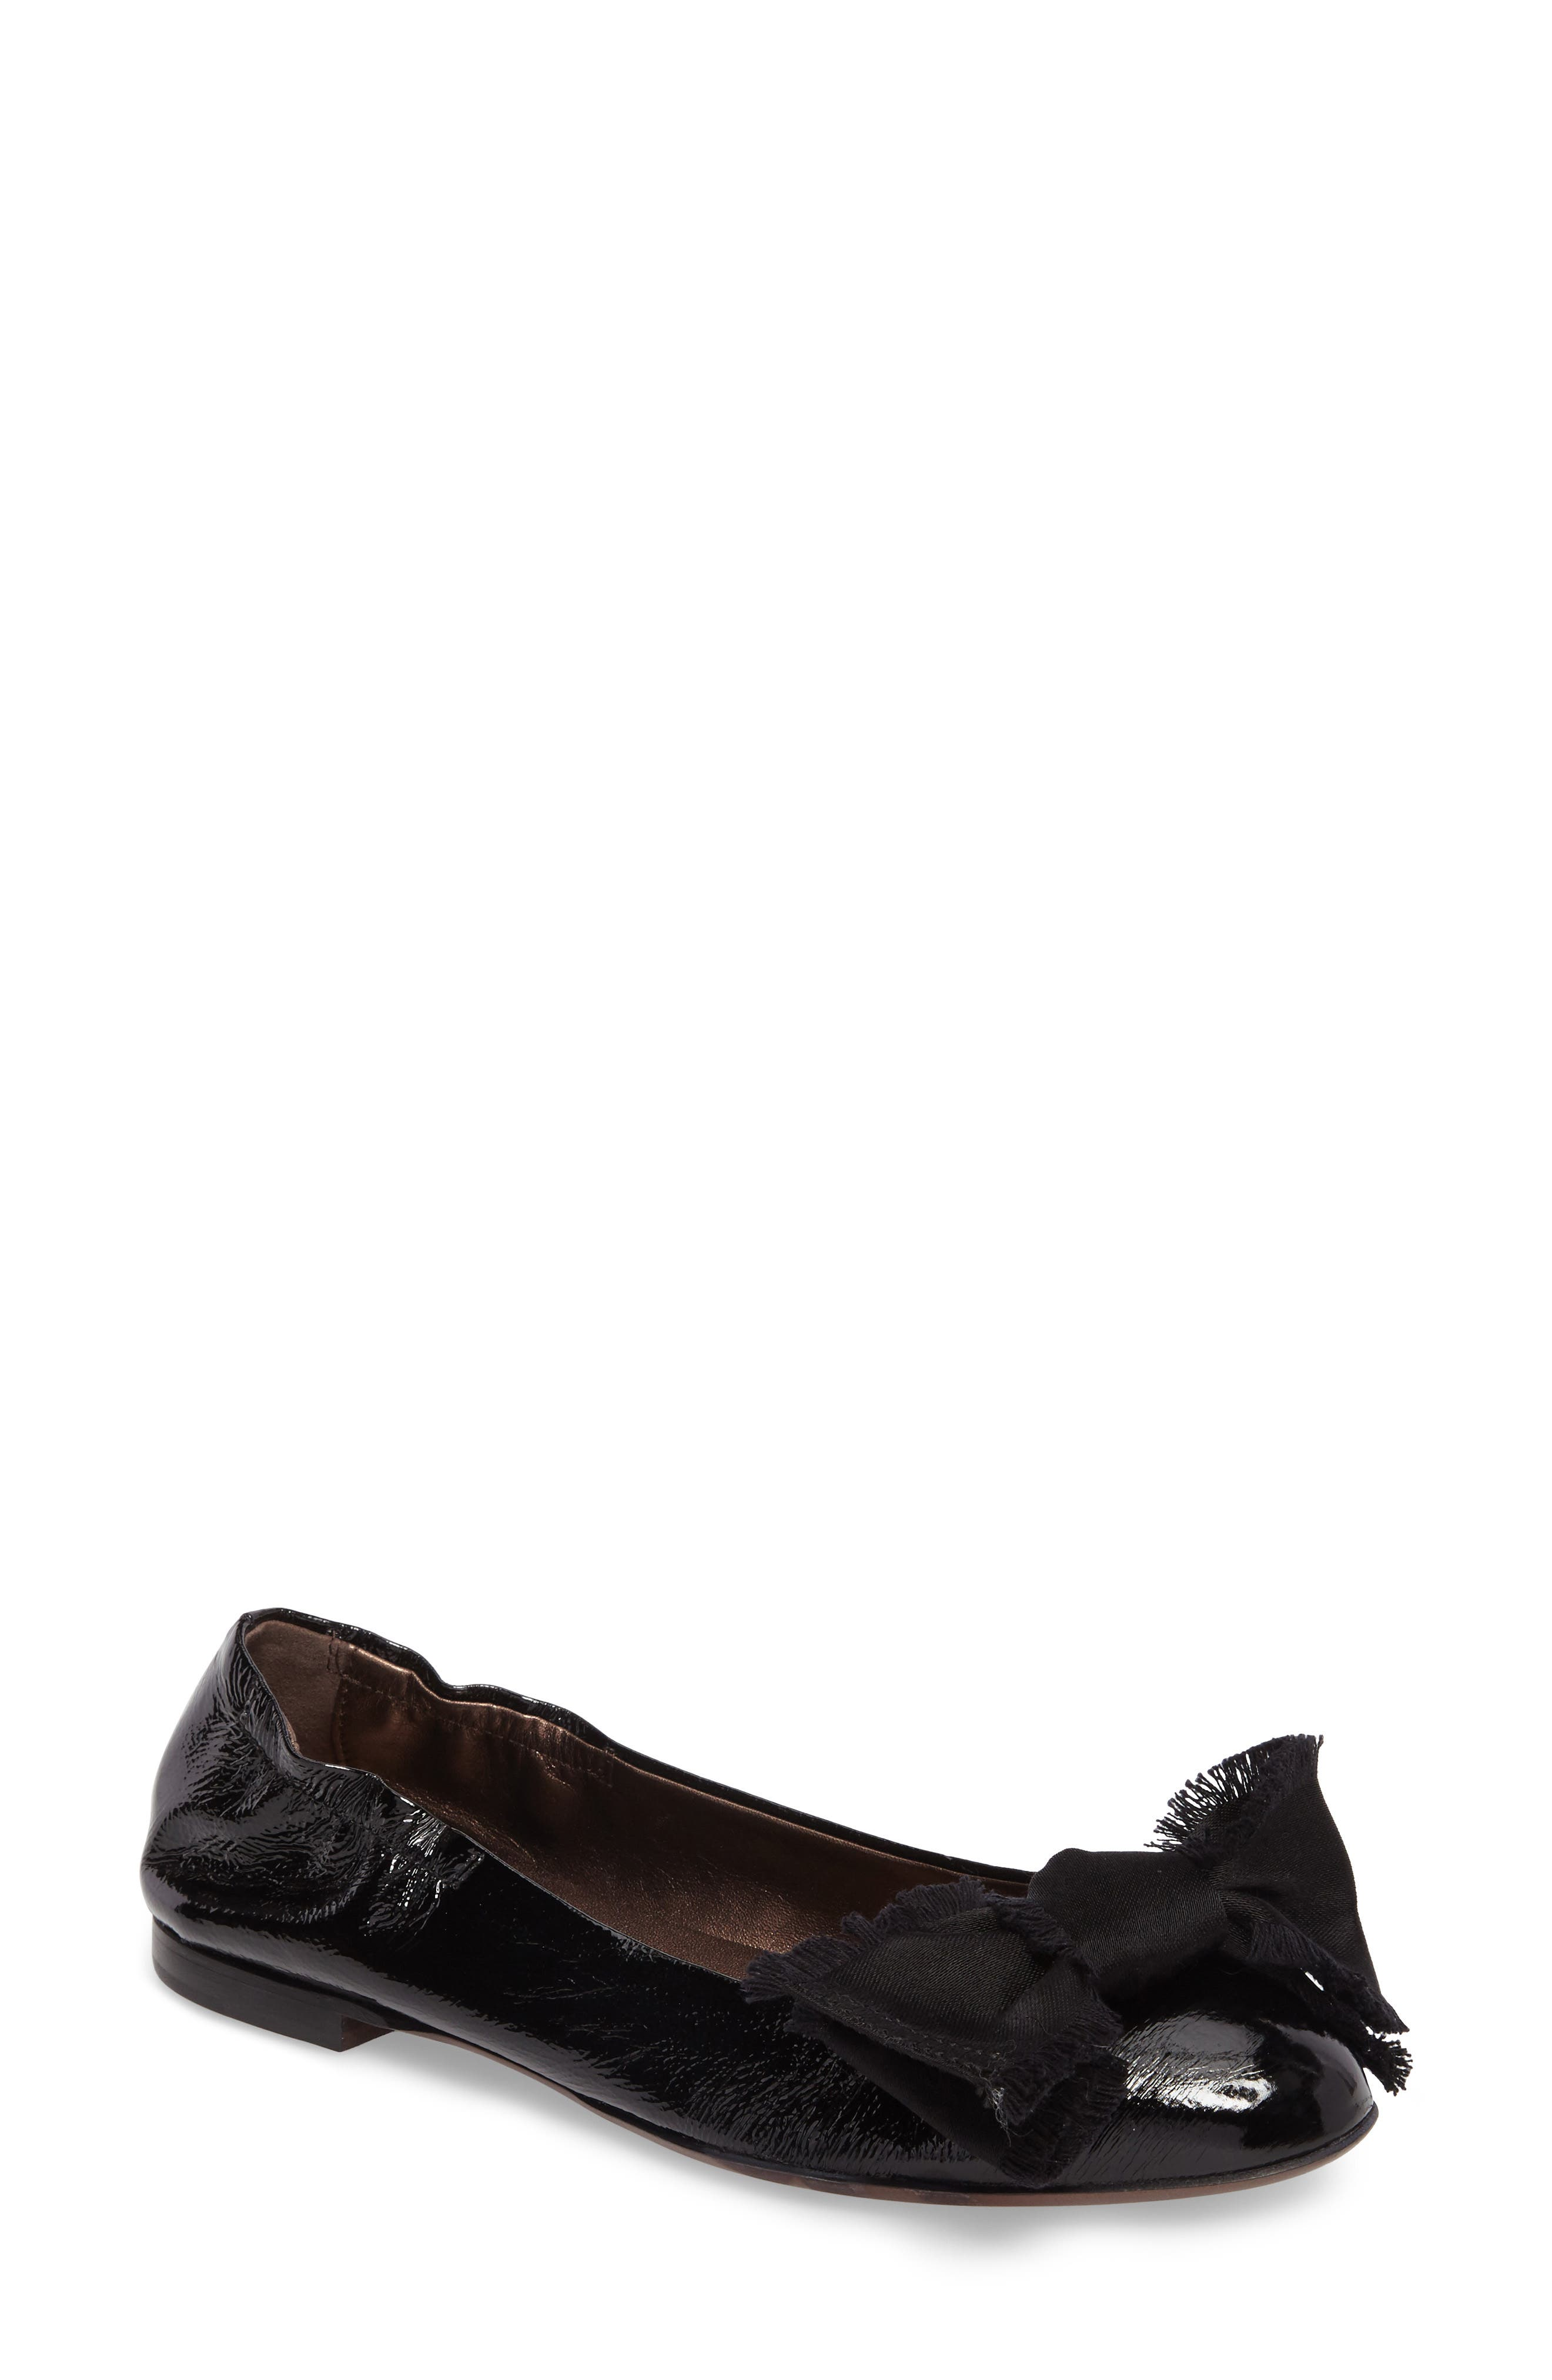 Satin Bow Ballet Flat,                             Main thumbnail 1, color,                             BLACK LEATHER